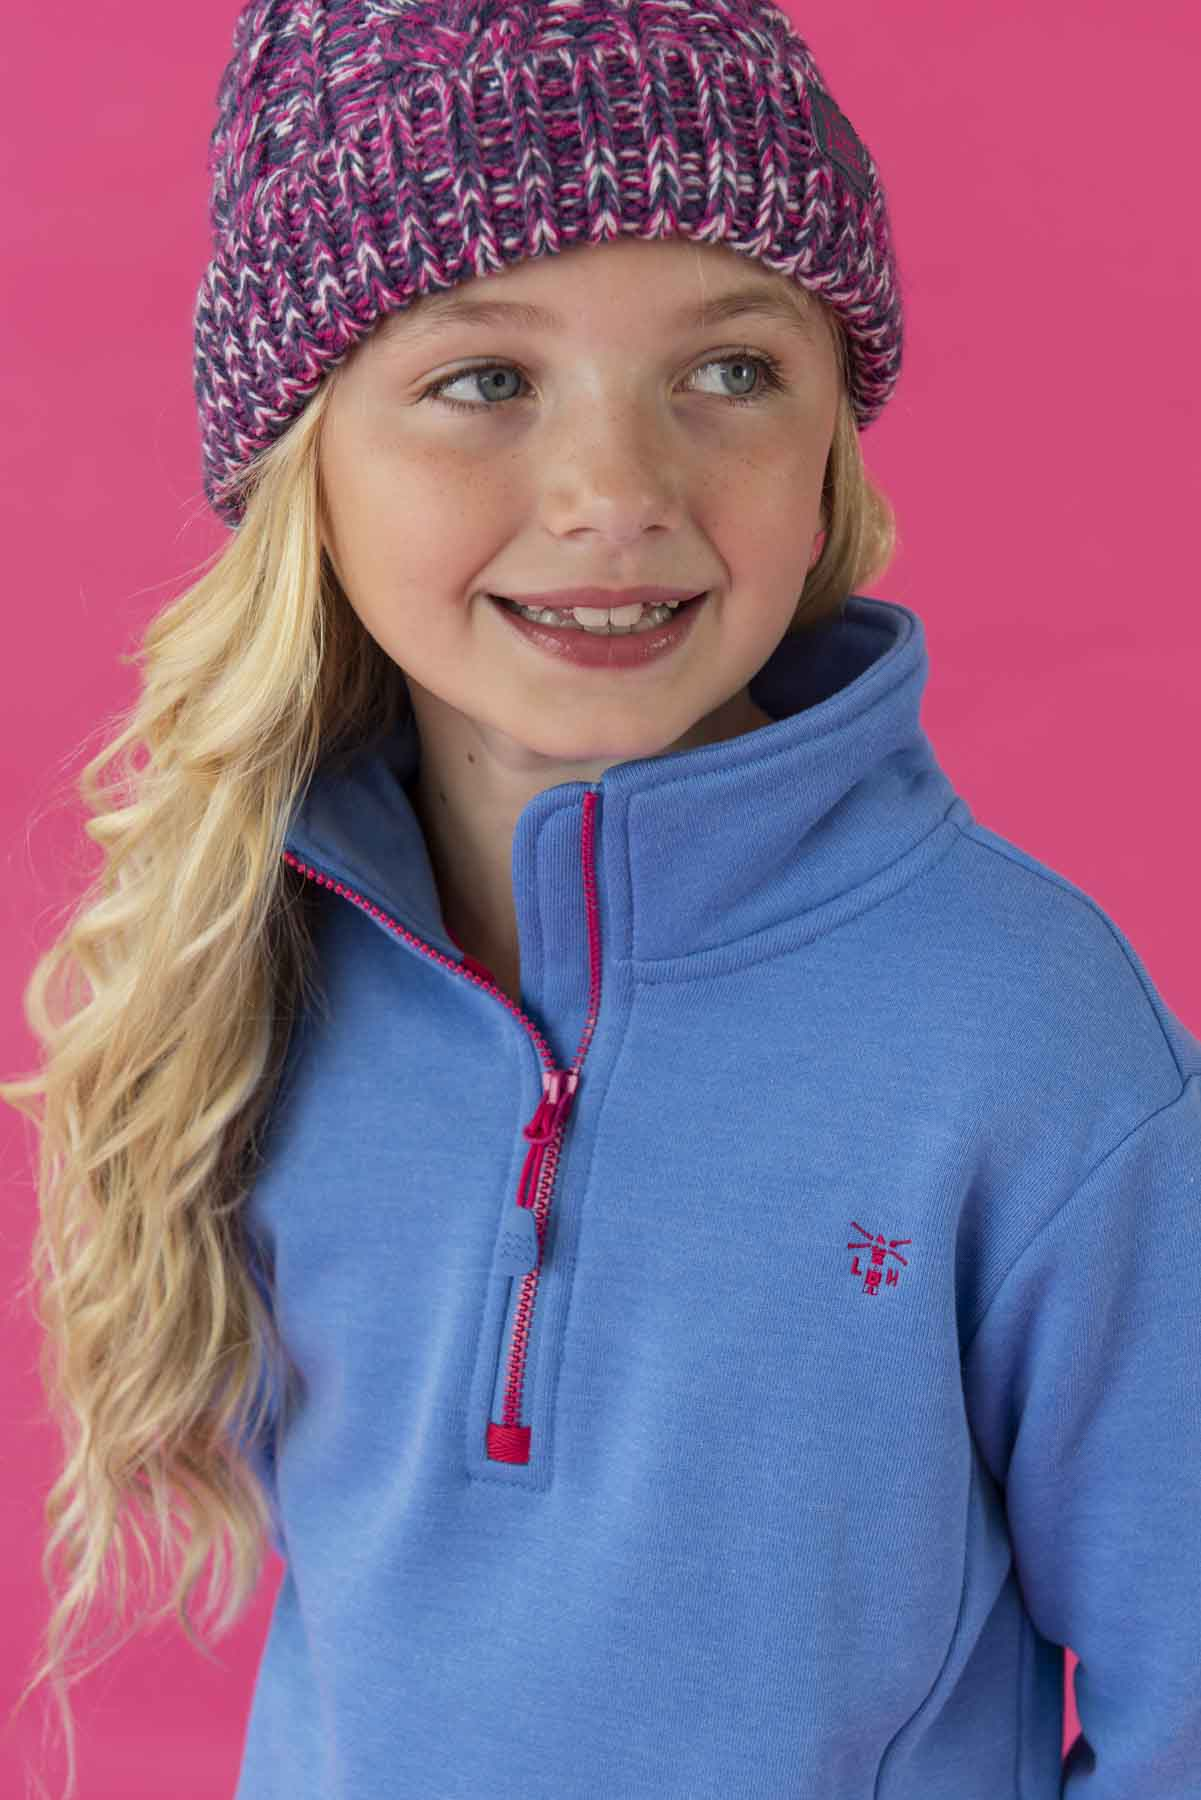 Robyn Sweatshirt - Blue, Girl's Half Zip Top | Lighthouse